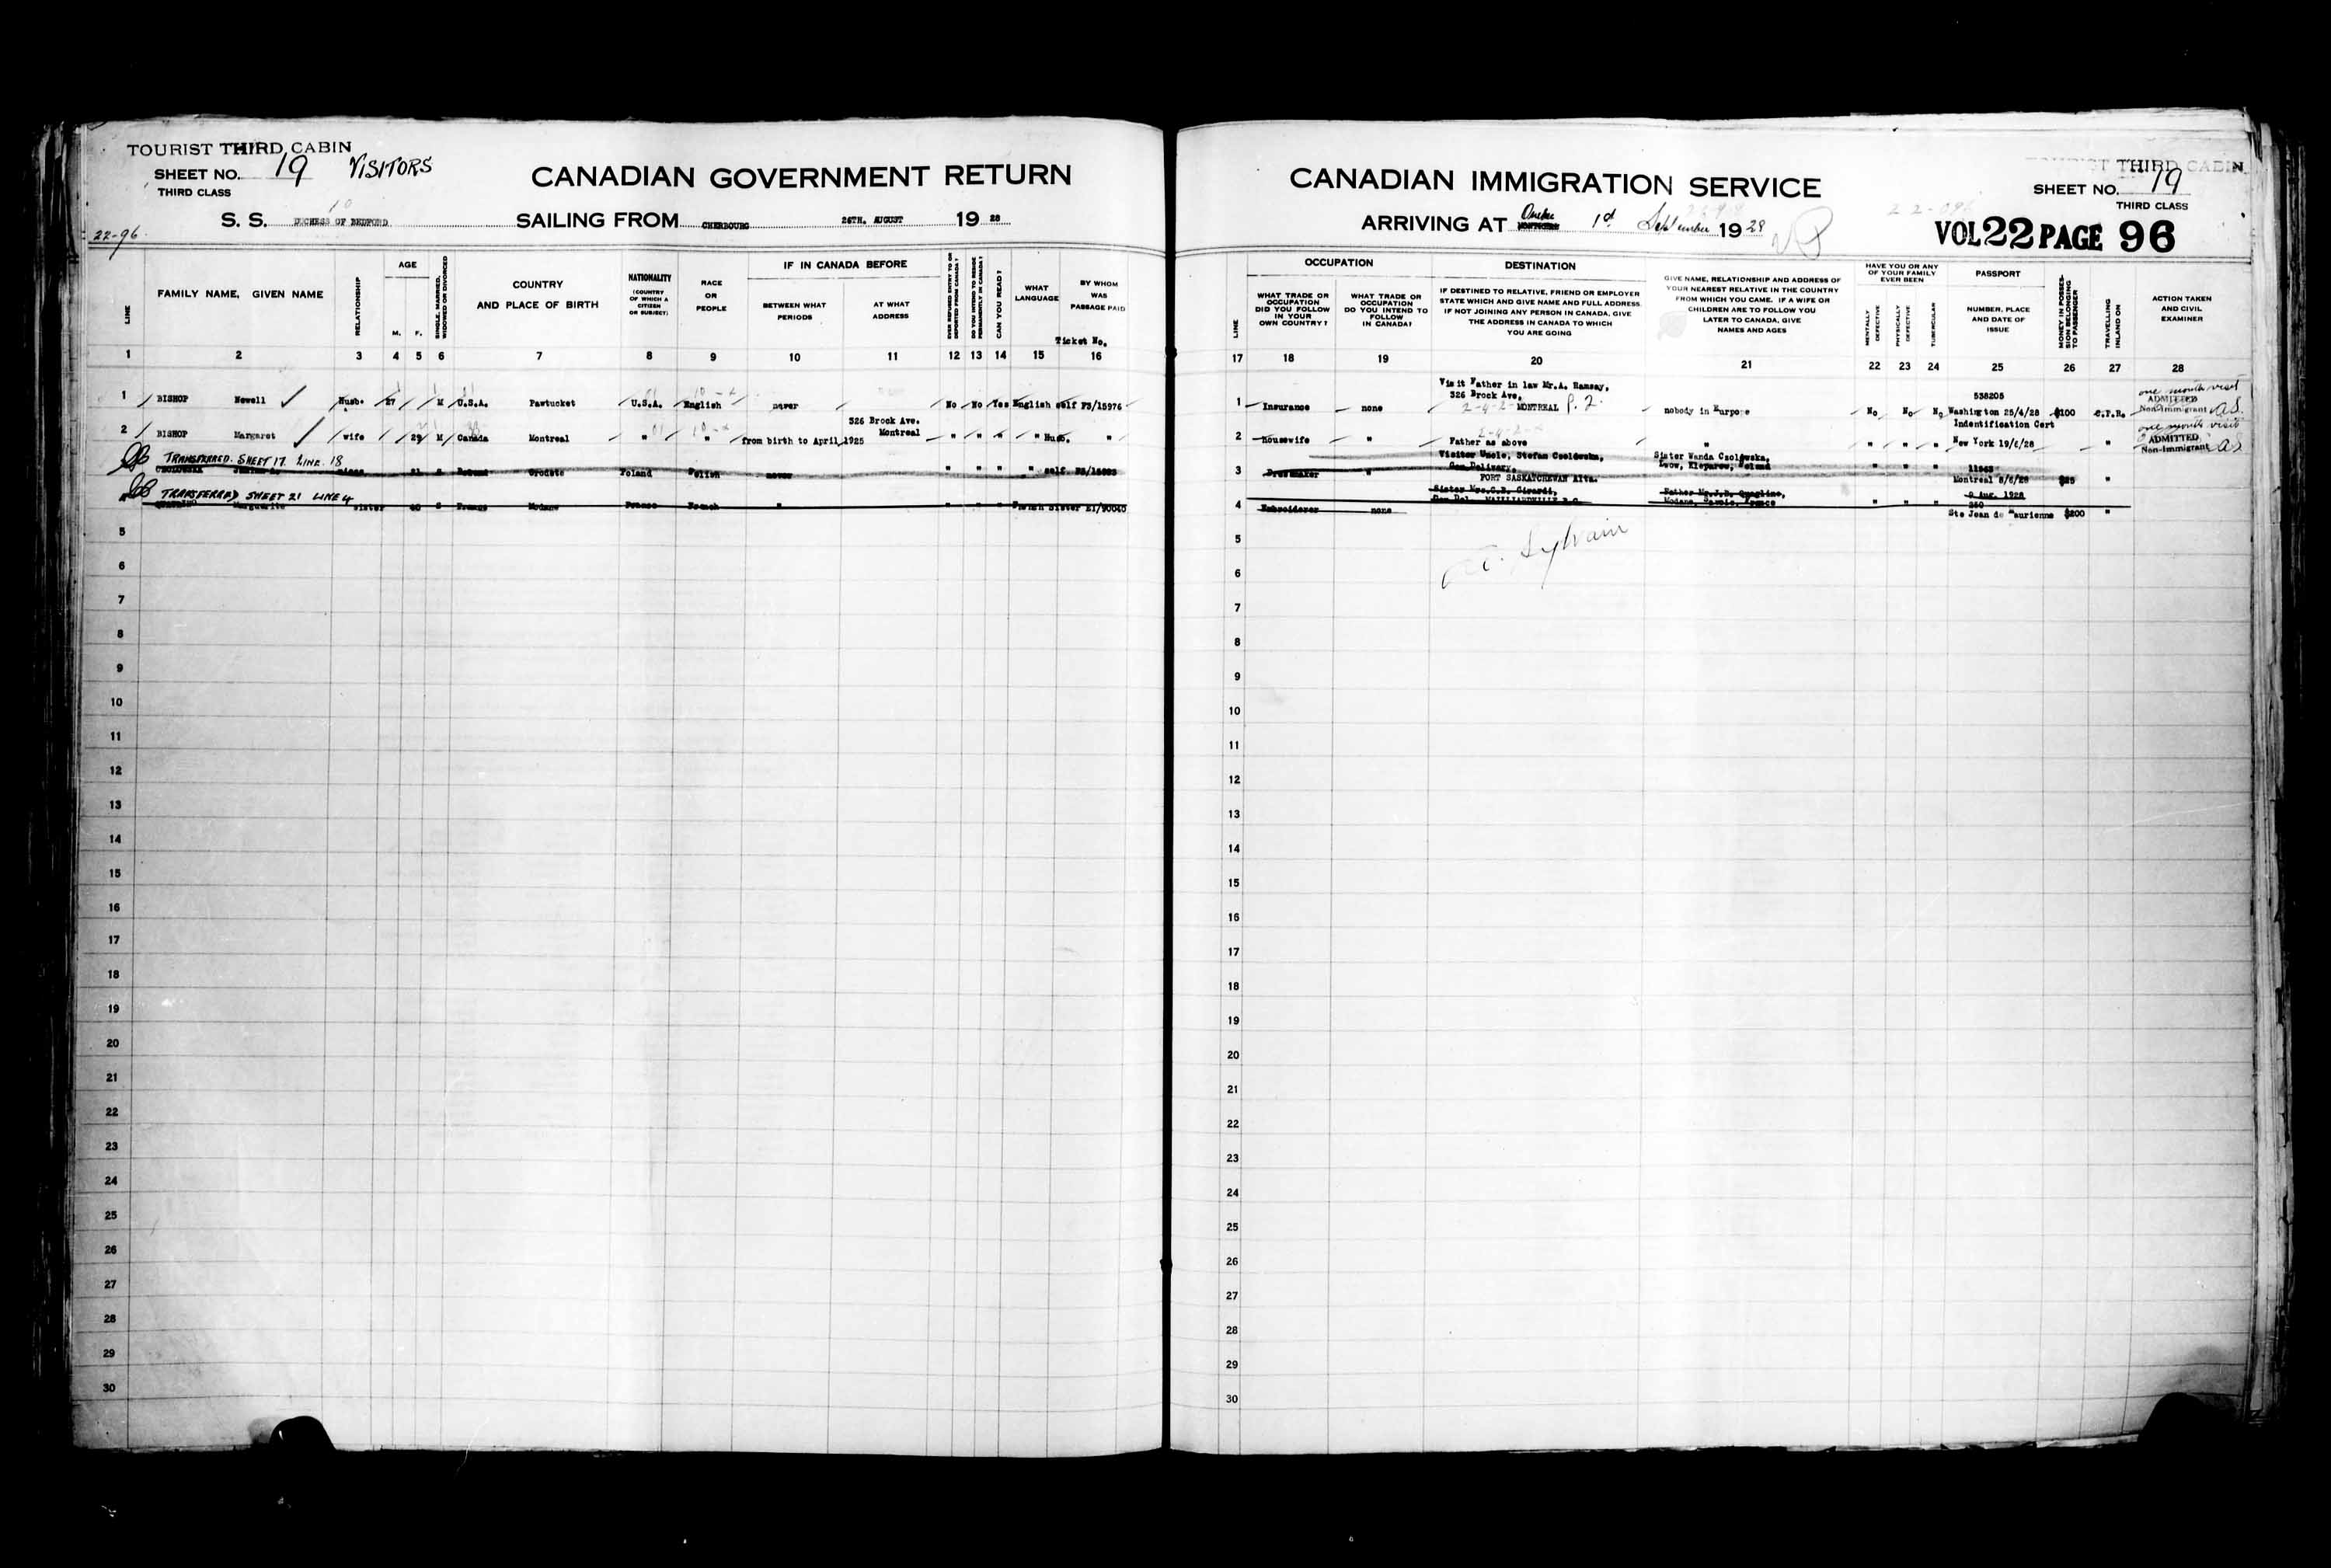 Title: Passenger Lists: Quebec City (1925-1935) - Mikan Number: 134839 - Microform: t-14748